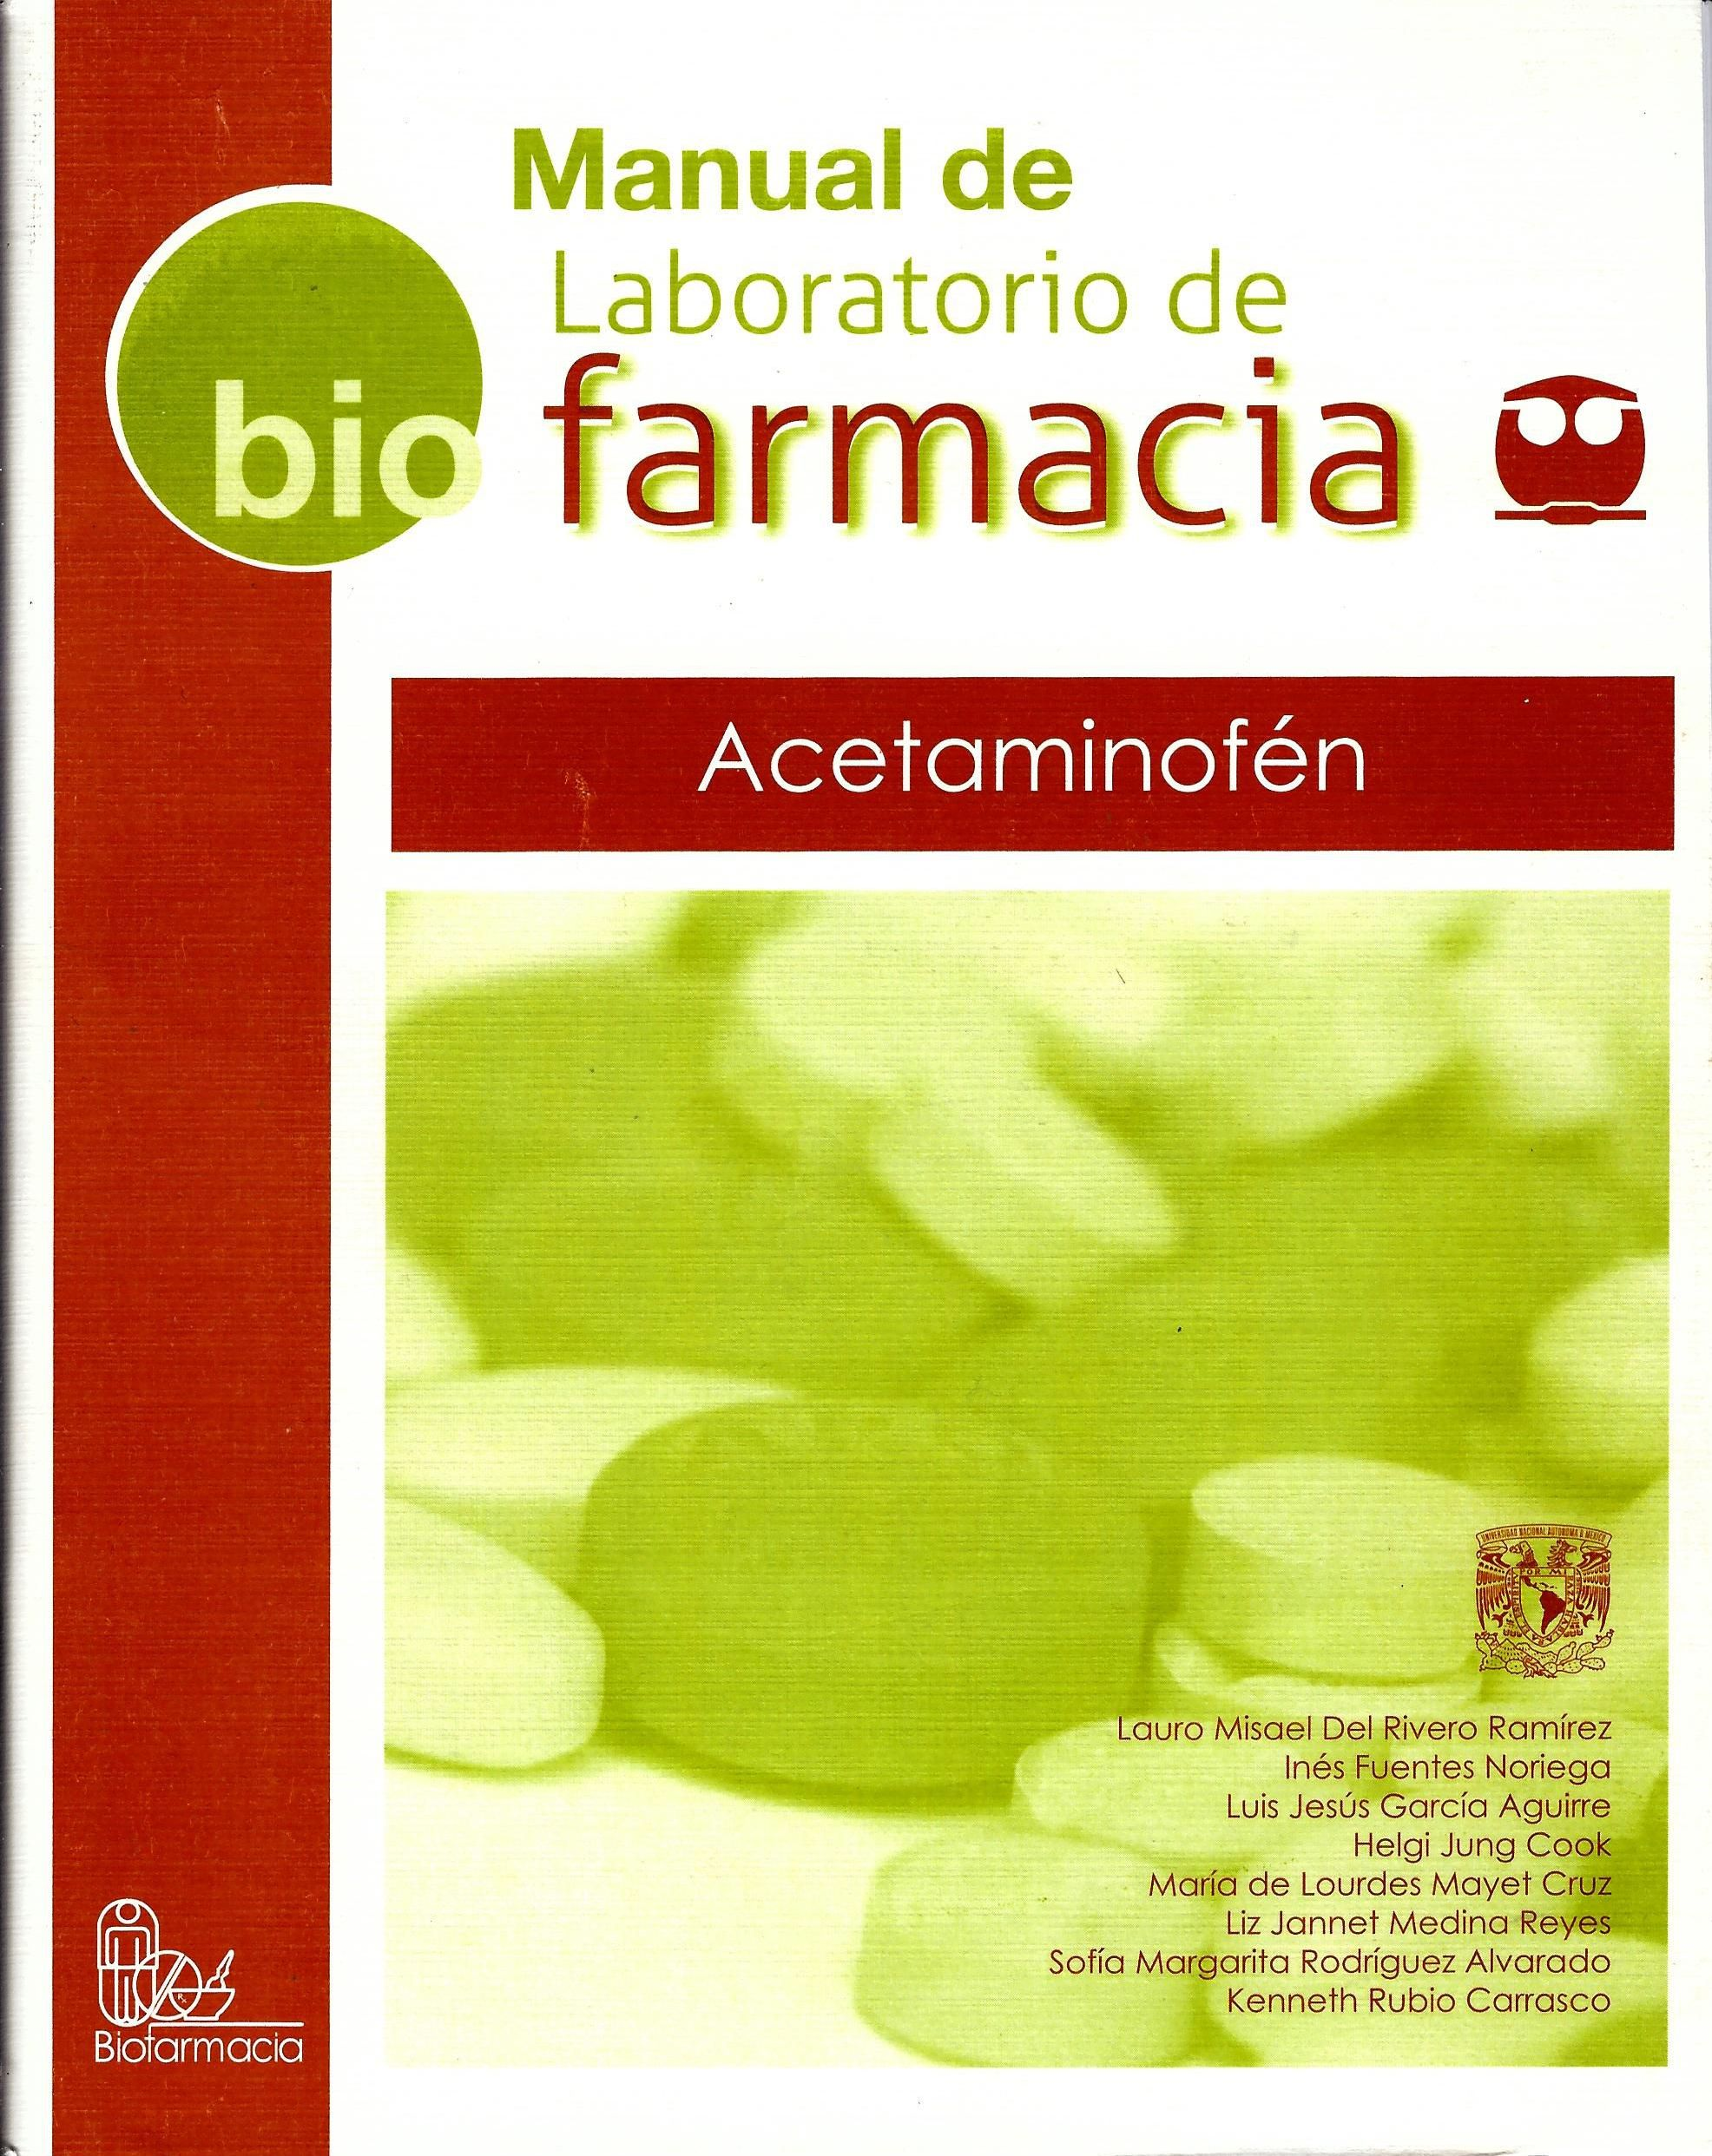 Manual de laboratorio de farmacia. Acetaminofén